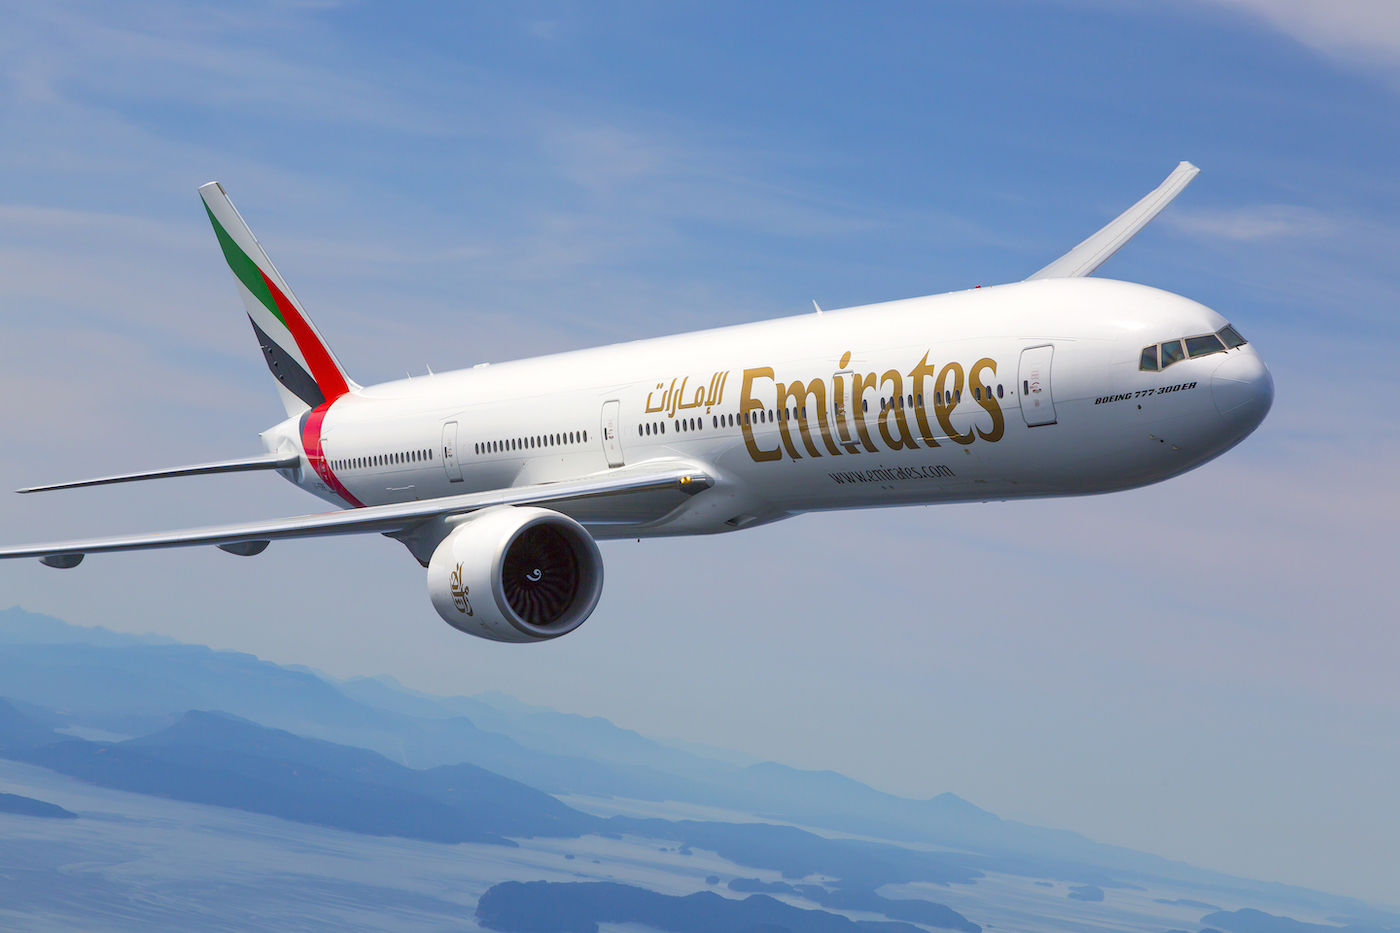 Emirates expands US network with 4-weekly flights to Orlando